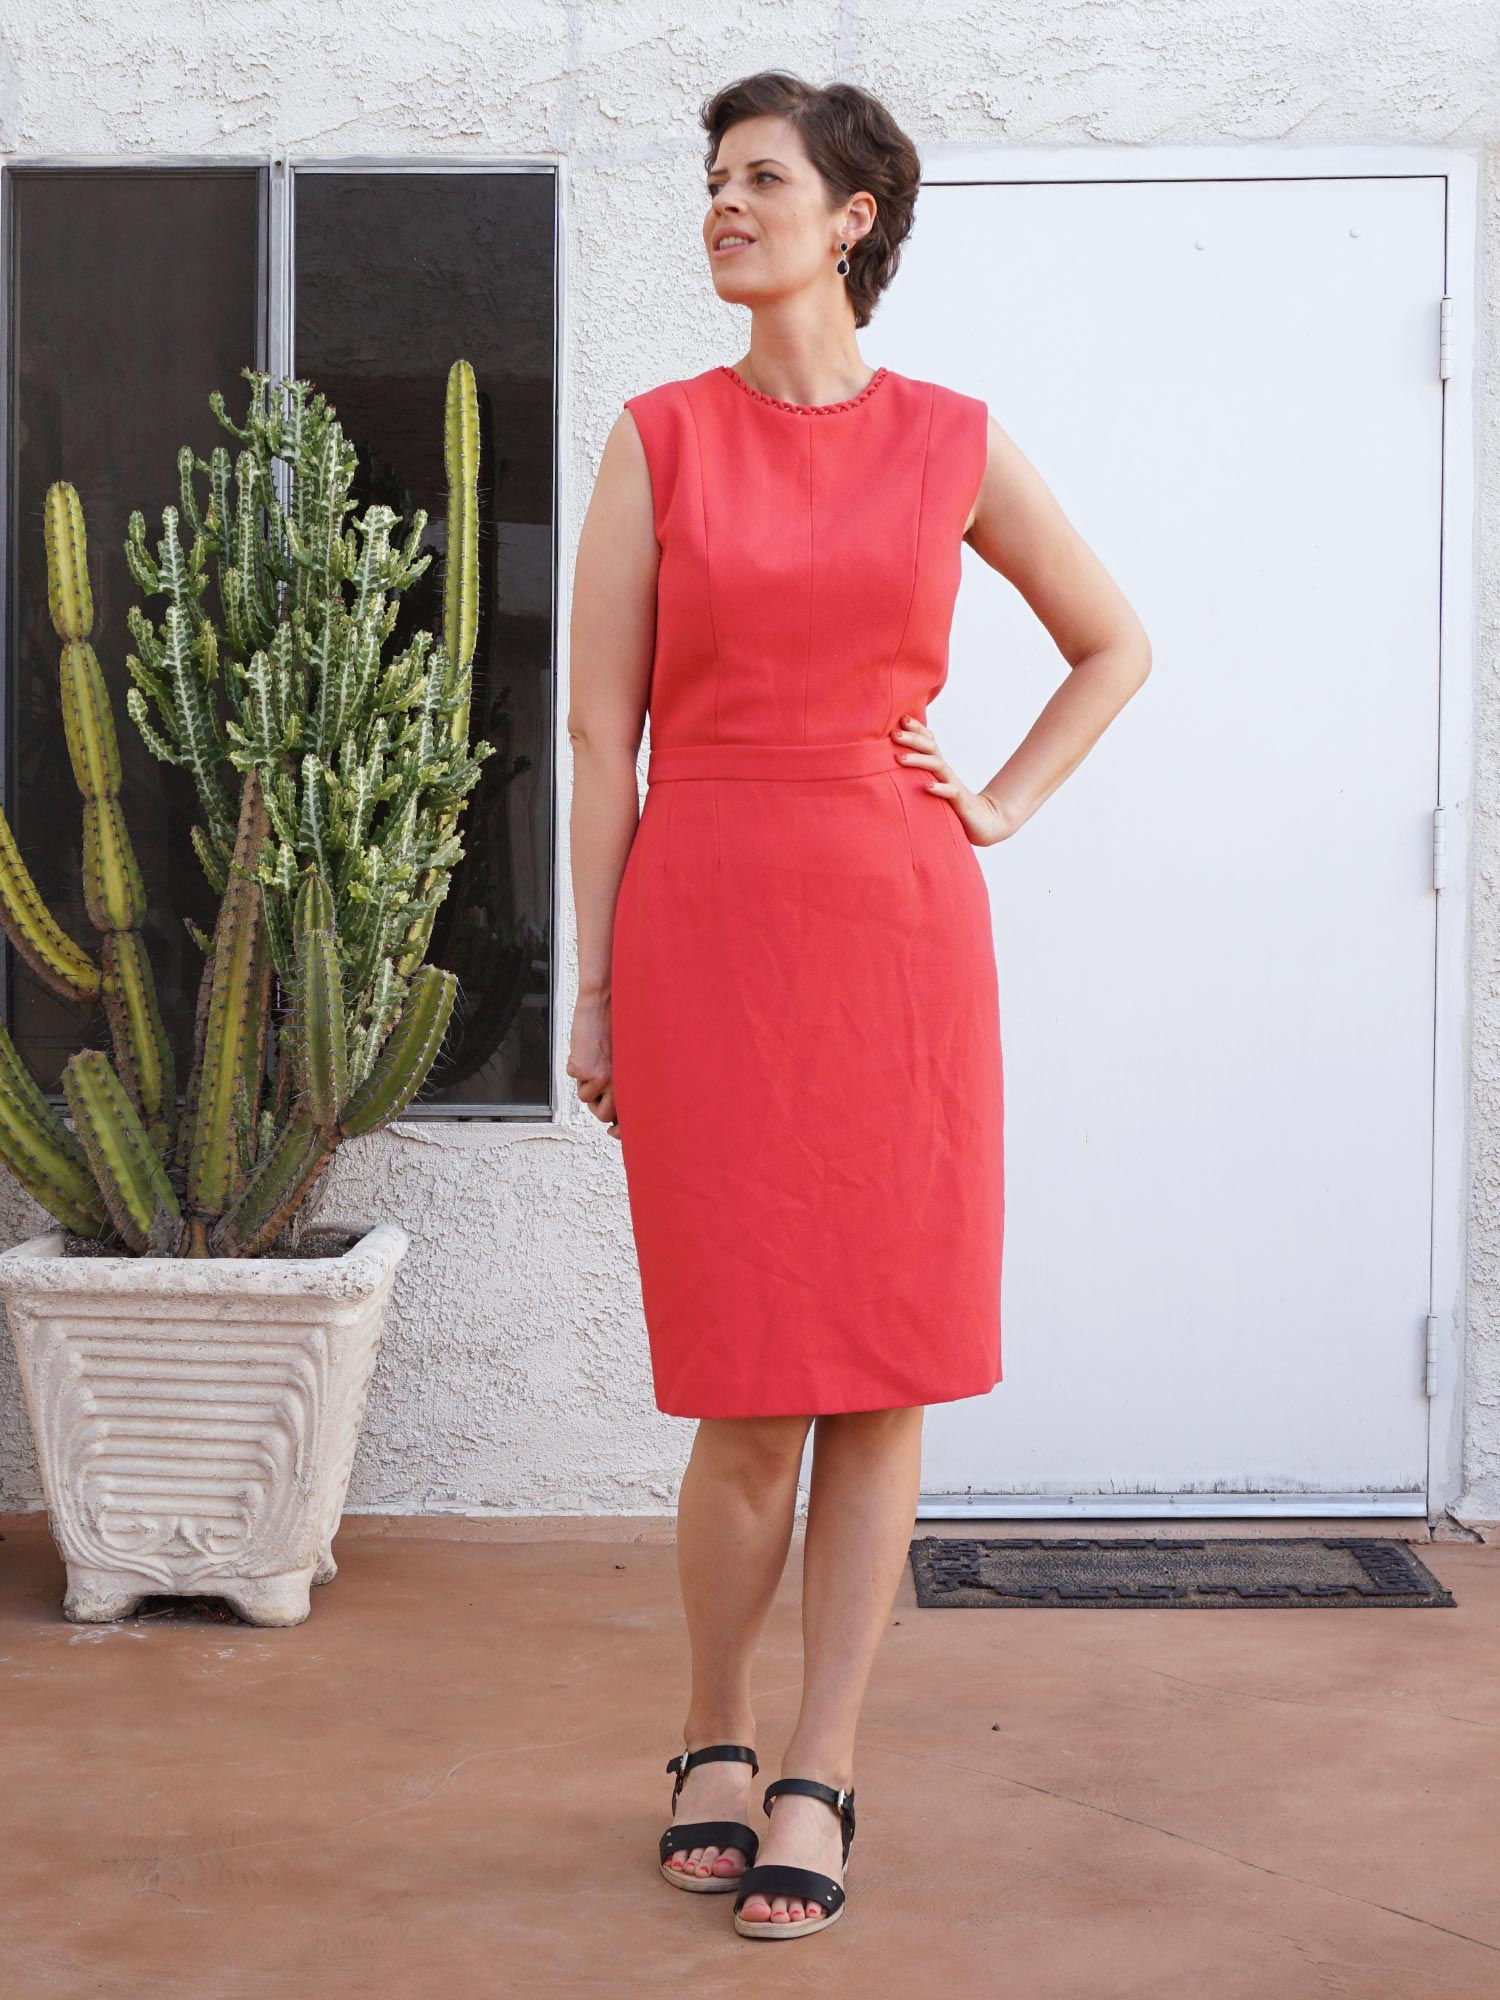 17SEWDIY-RefashionersOutfit-front4.jpg